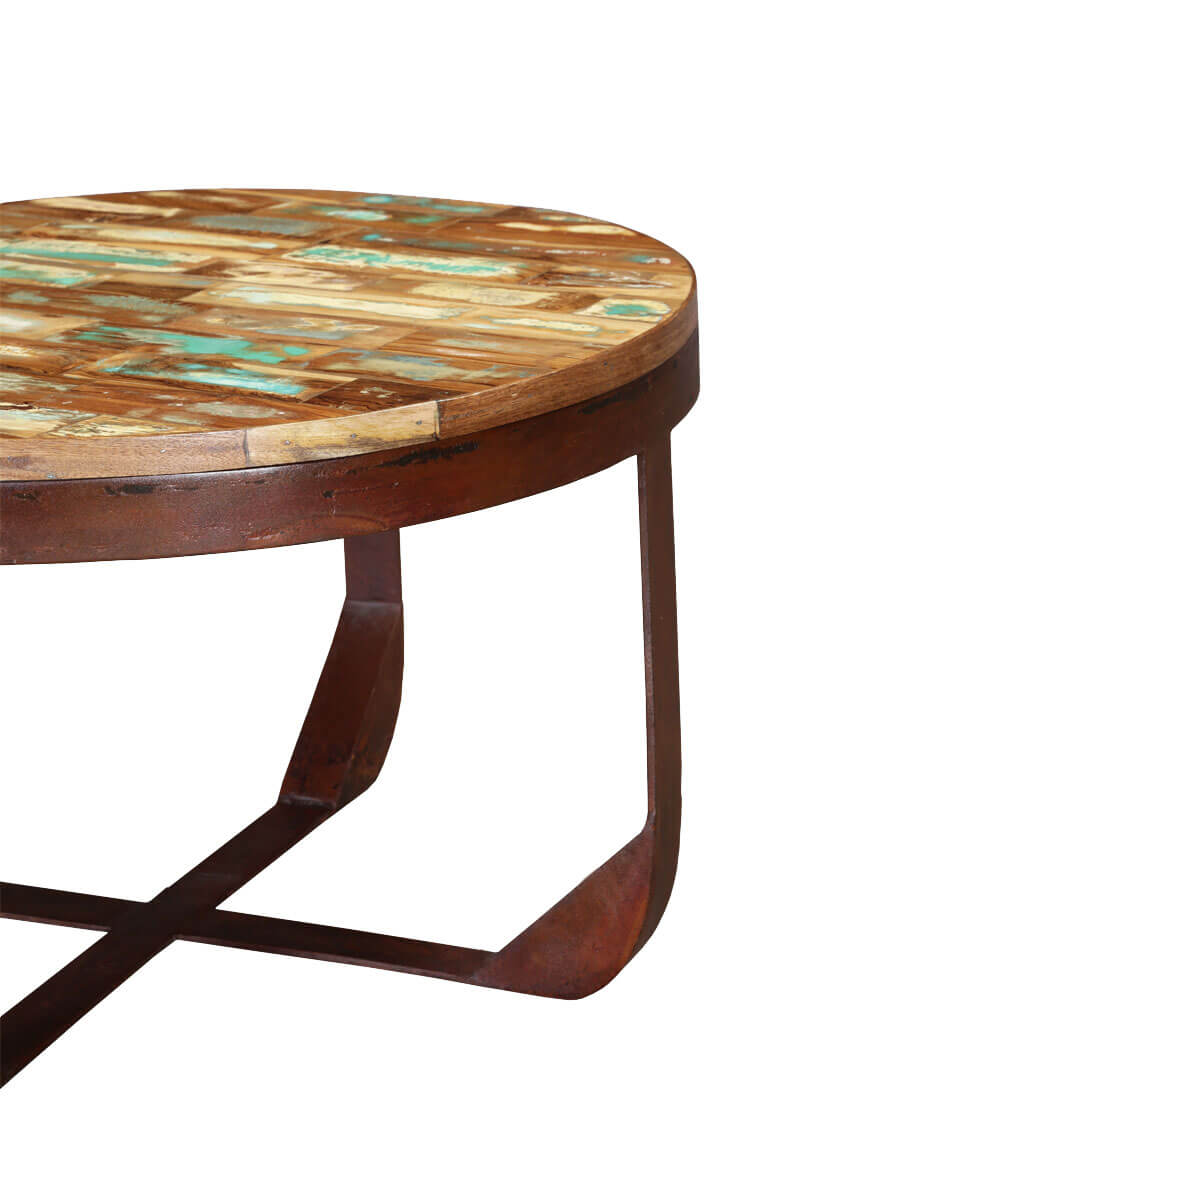 Industrial 29 round handcrafted reclaimed wood rustic coffee table Rustic round coffee table